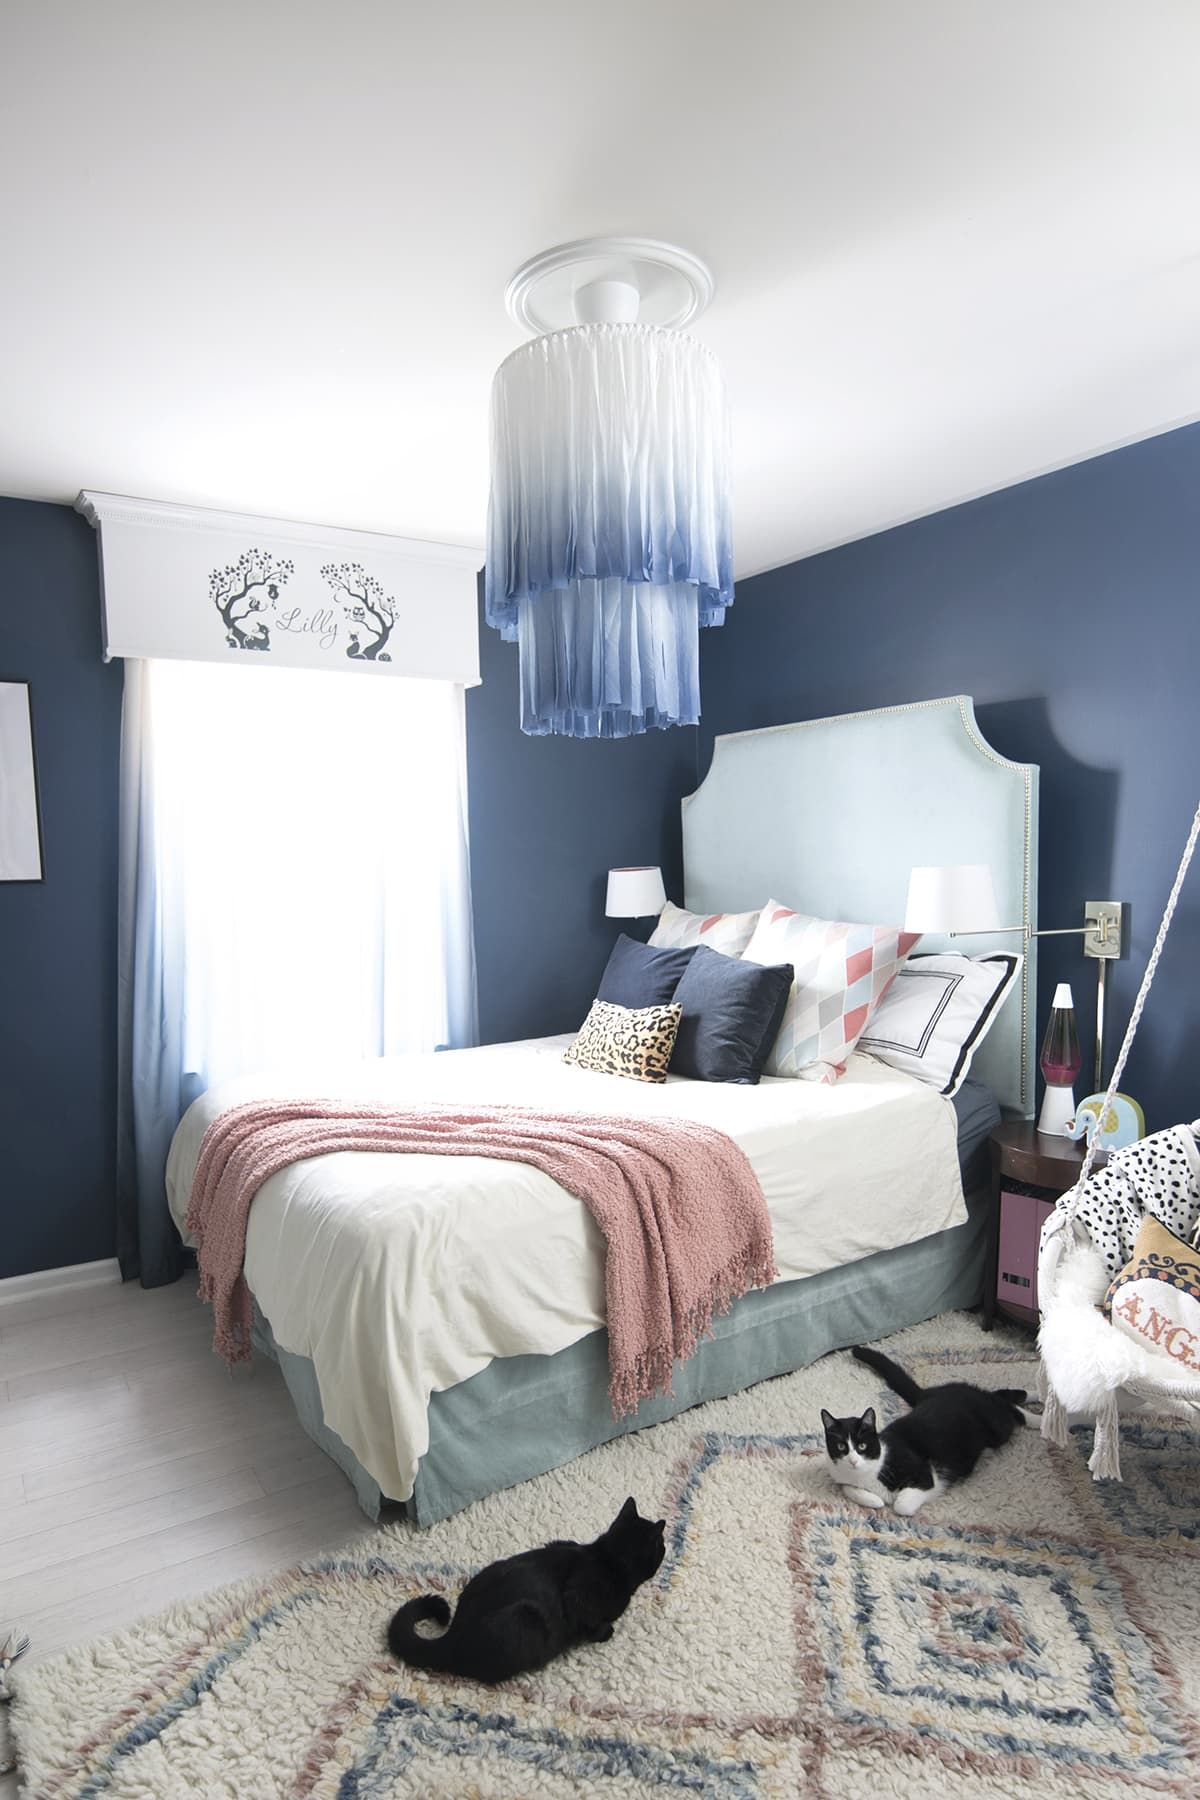 macrame white and blue chandelier in bedroom